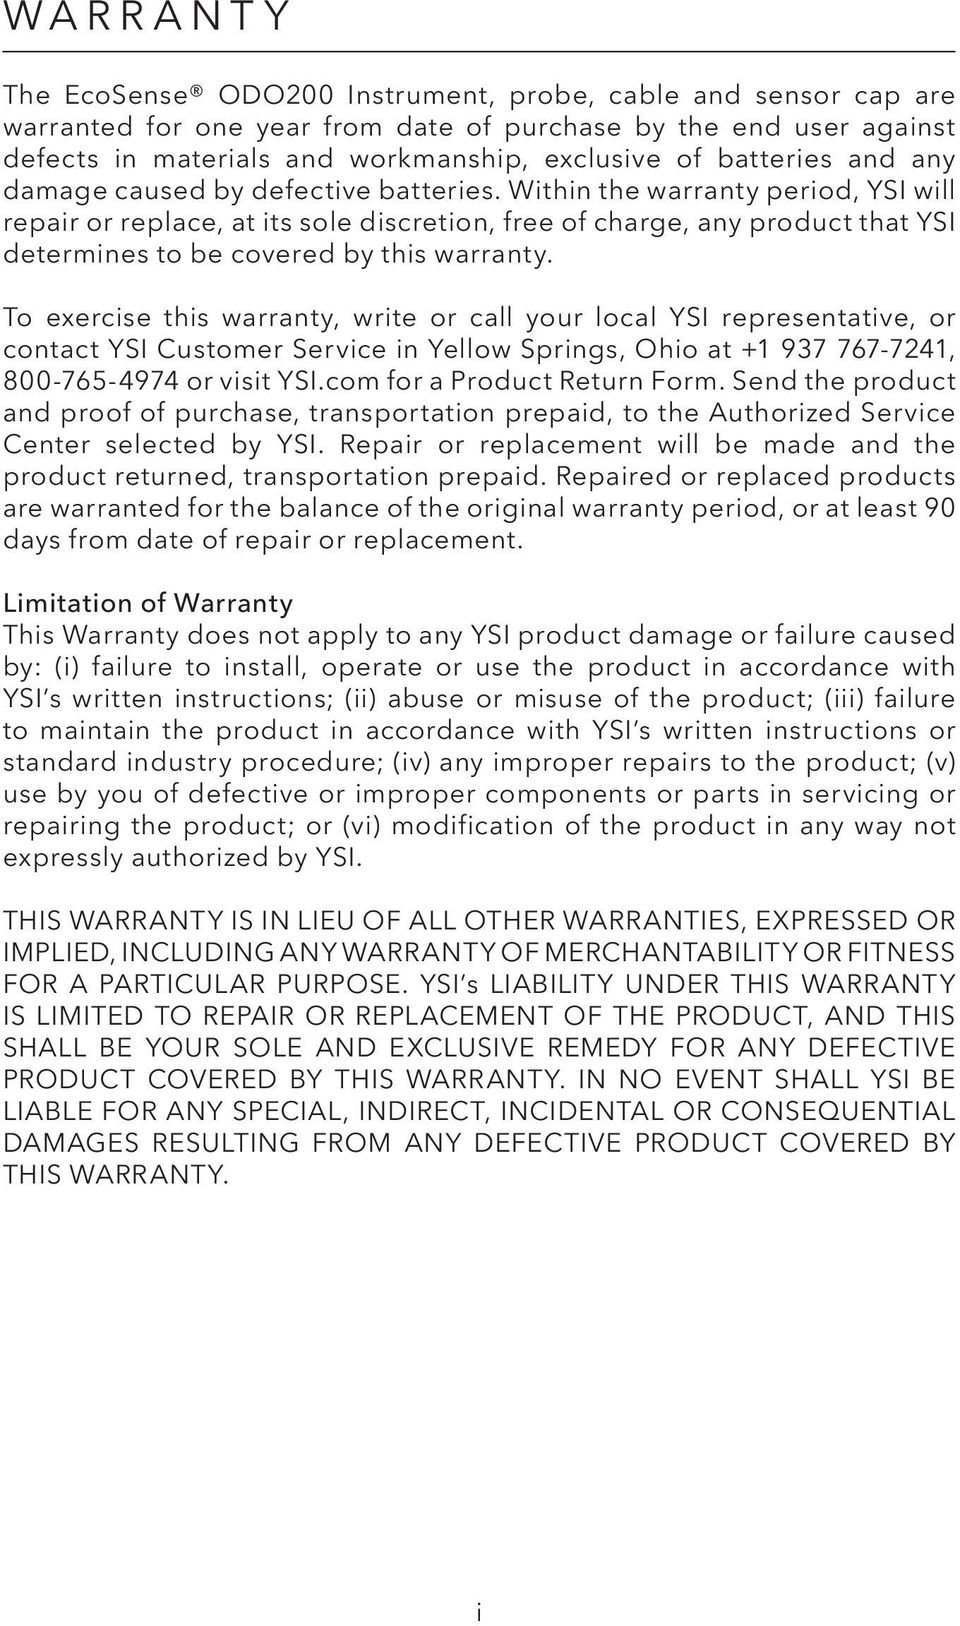 Within the warranty period, YSI will repair or replace, at its sole discretion, free of charge, any product that YSI determines to be covered by this warranty.